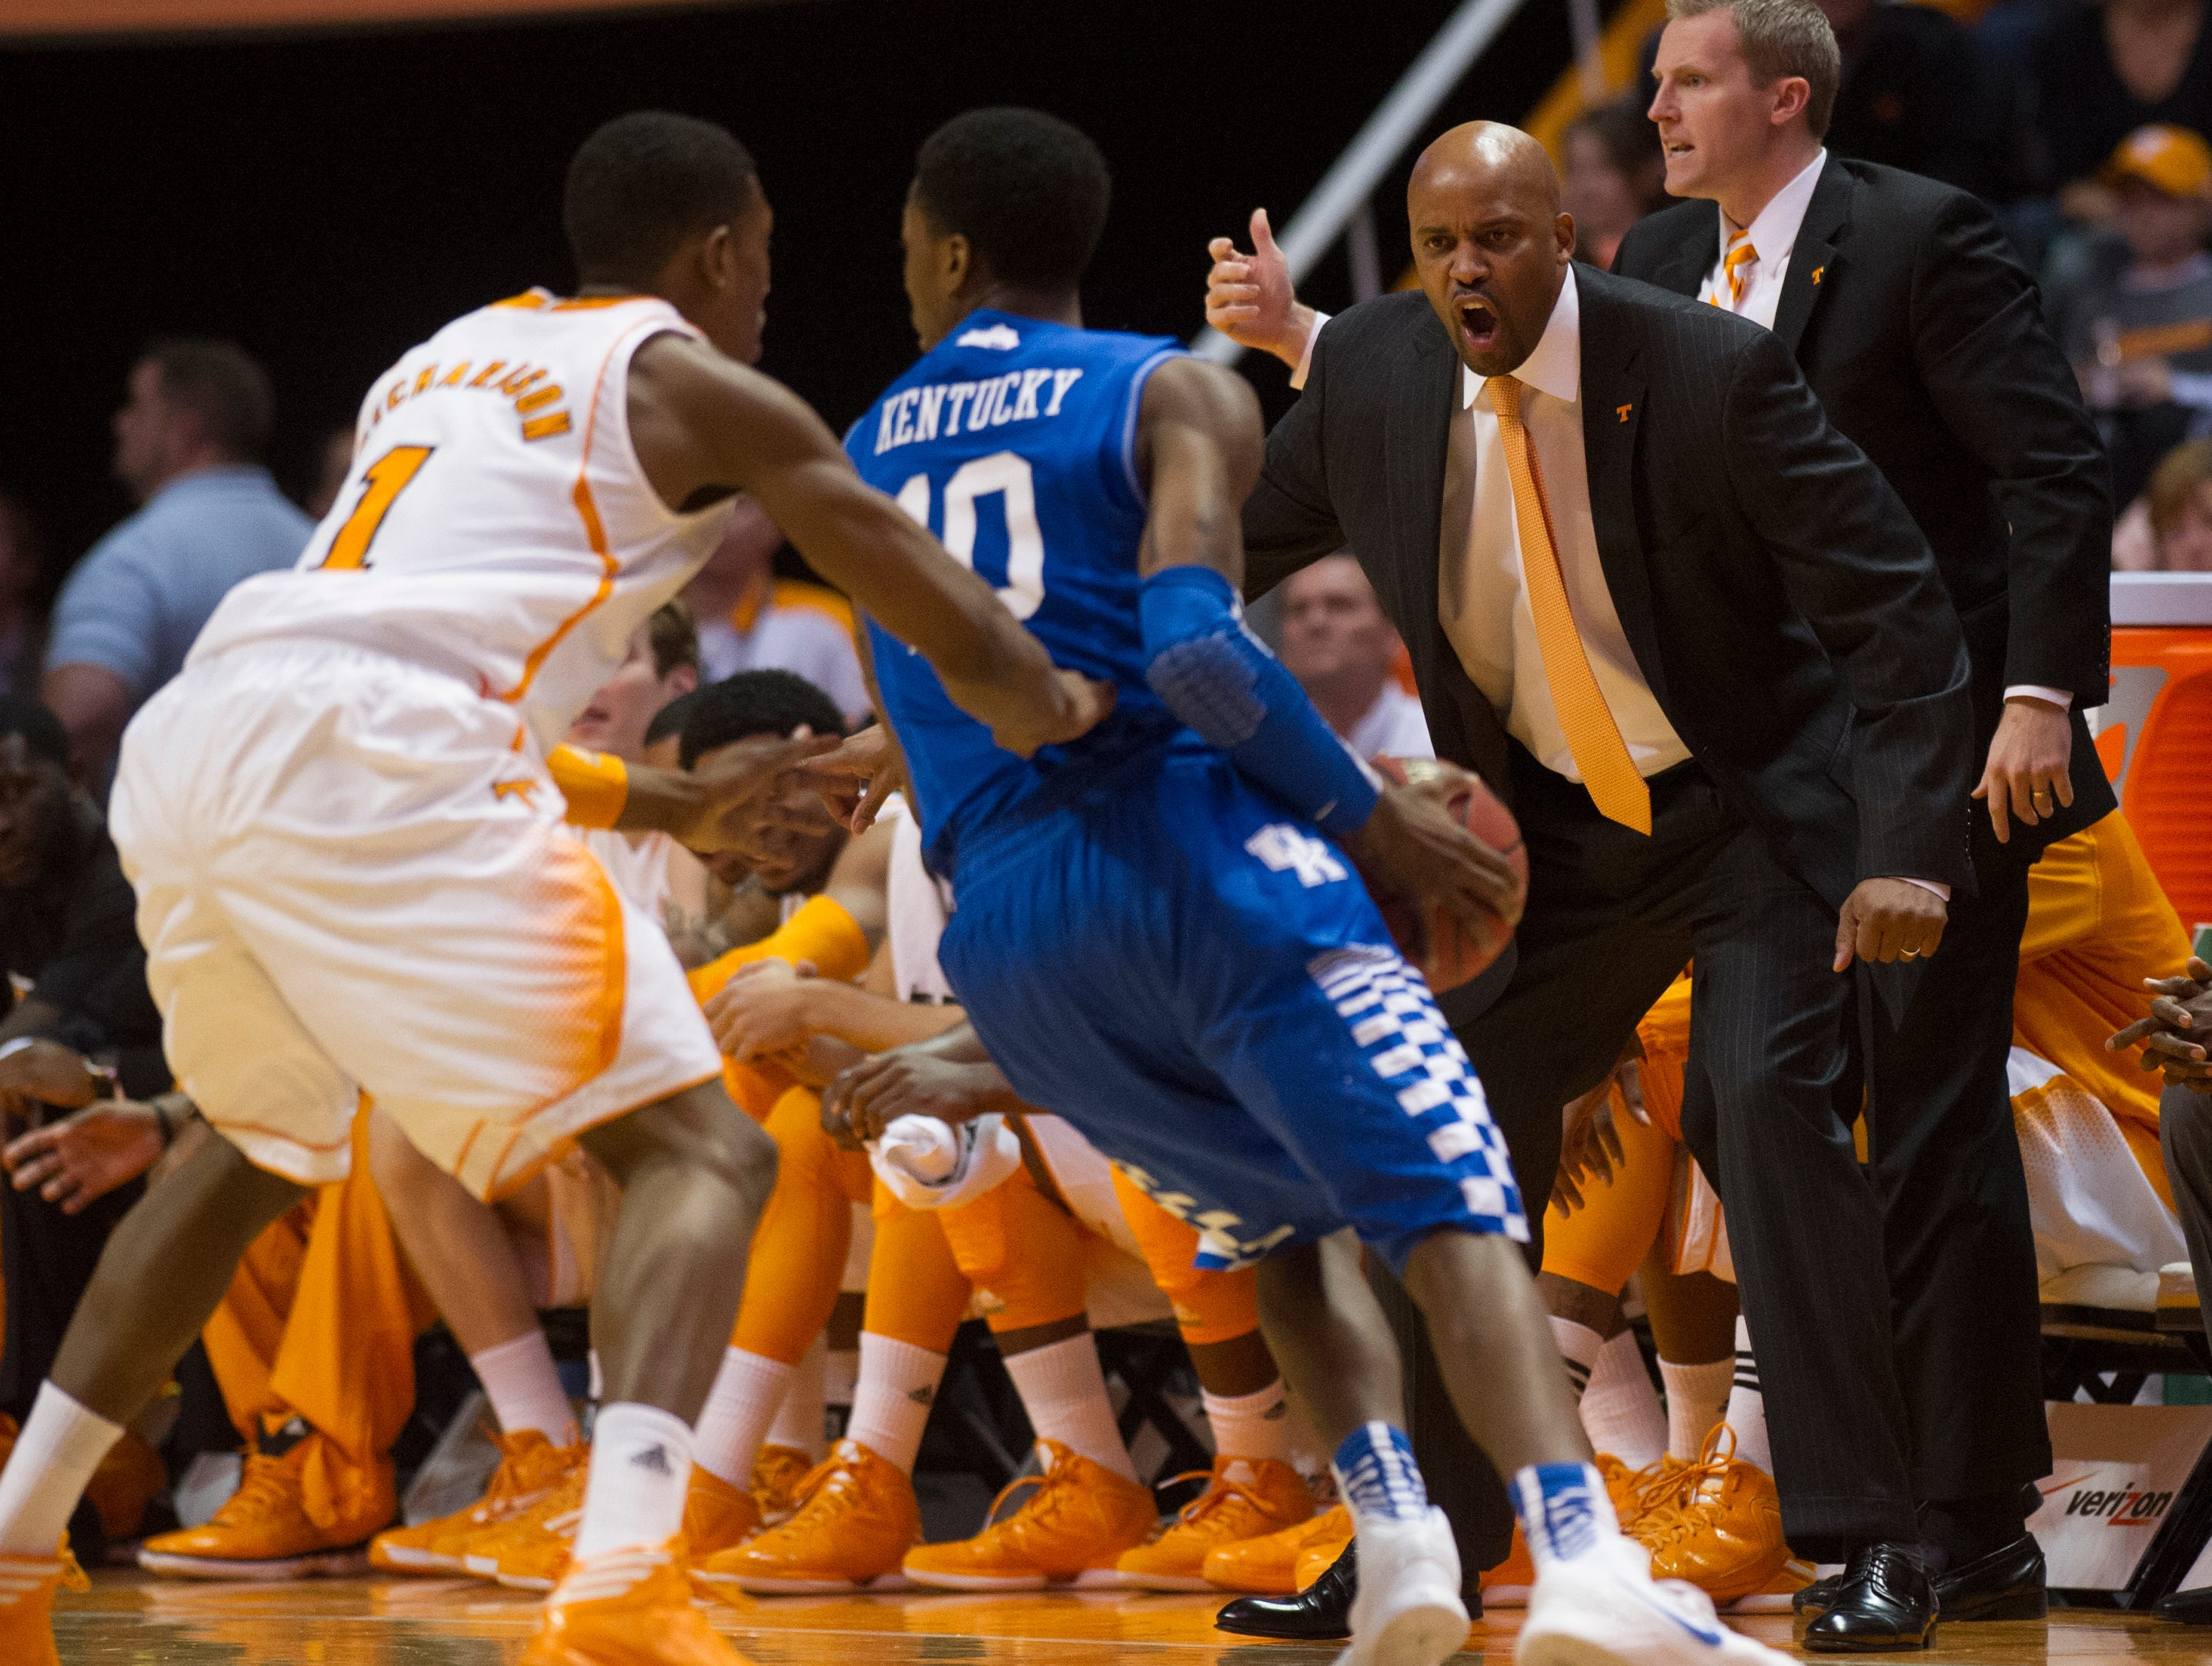 Tennessee head coach Cuonzo Martin calls to Tennessee guard Josh Richardson (1) as he guards Kentucky guard Archie Goodwin (10) during the first half at Thompson-Boling Arena Saturday, Feb. 16, 2013.